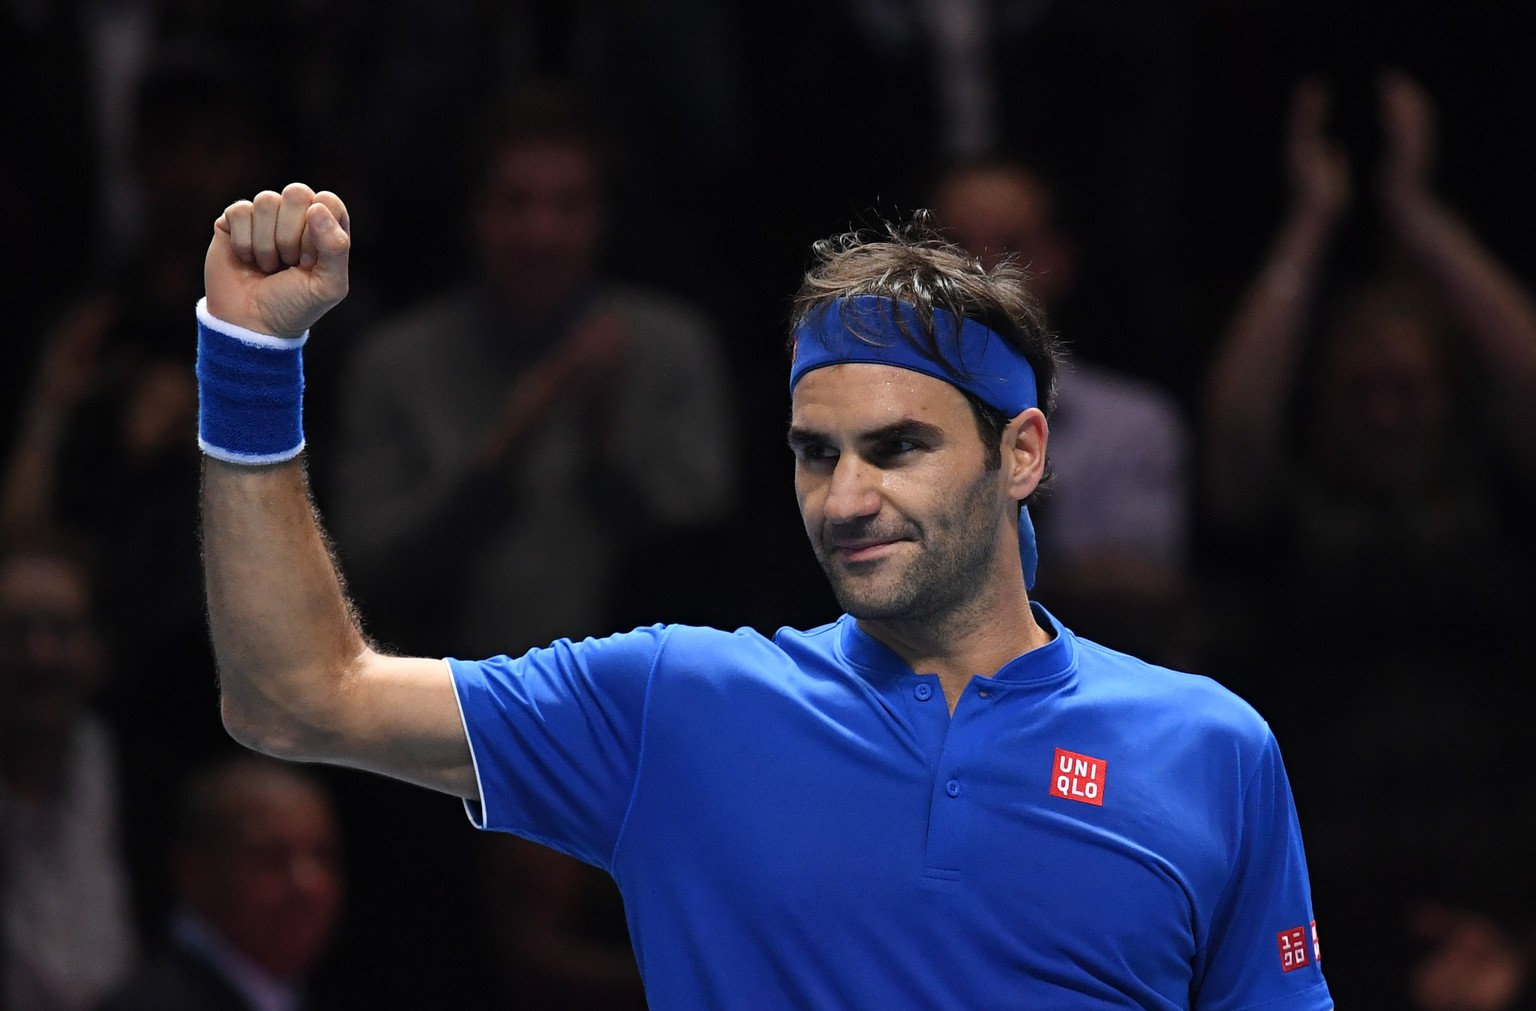 epa07168113 Switzerland's Roger Federer celebrates winning against South Africa's Kevin Anderson during their round robin match on day five of the ATP World Tour Finals tennis tournament at the O2 Arena in London, Britain, 15 November 2018.  EPA/NEIL HALL